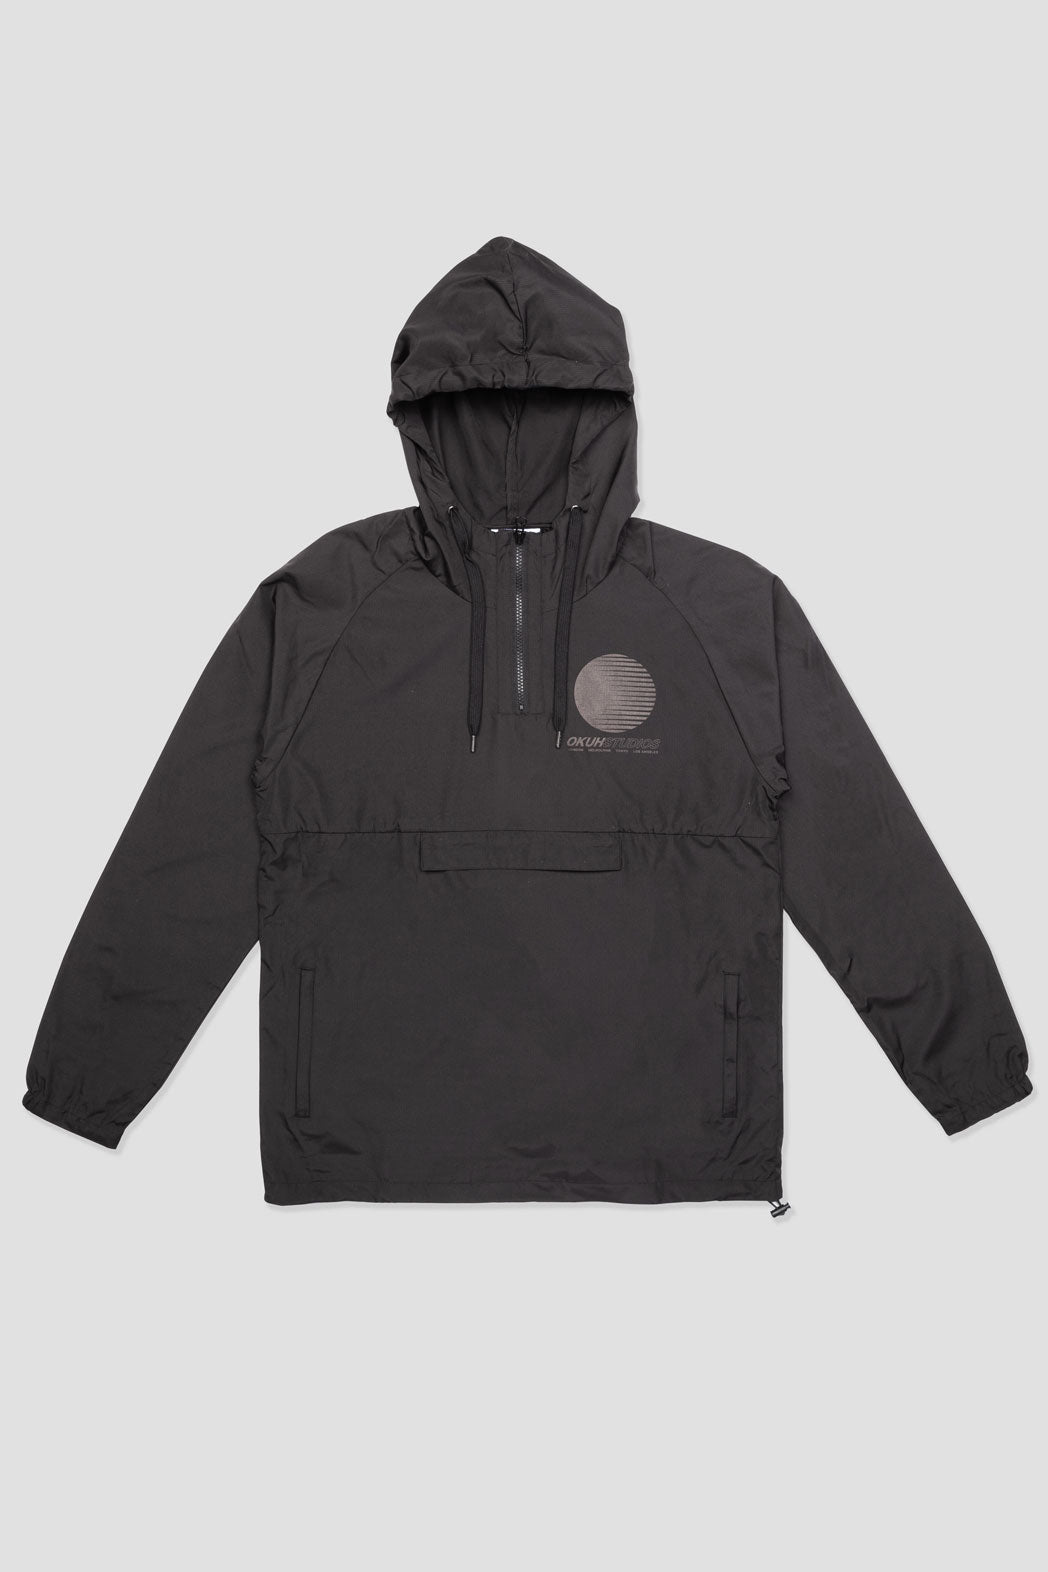 Black 1st Gen Coach Jacket